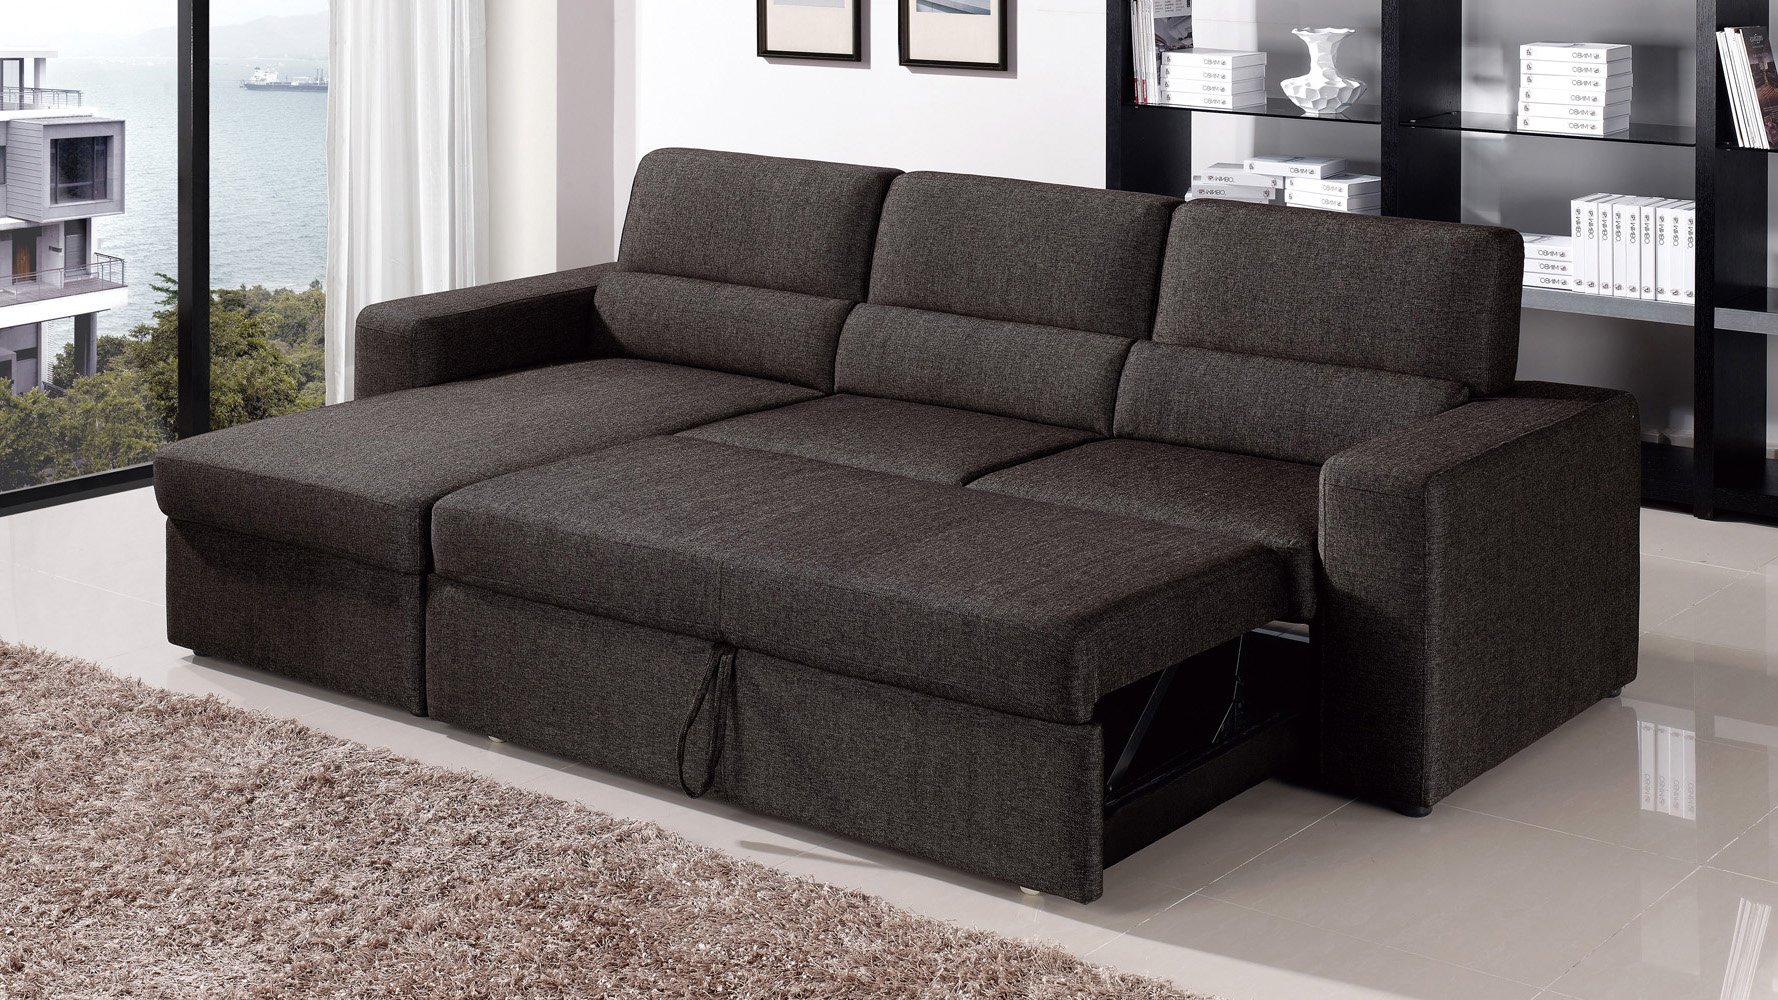 Sectional Sleeper Sofa : Black brown clubber sleeper sectional sofa zuri furniture